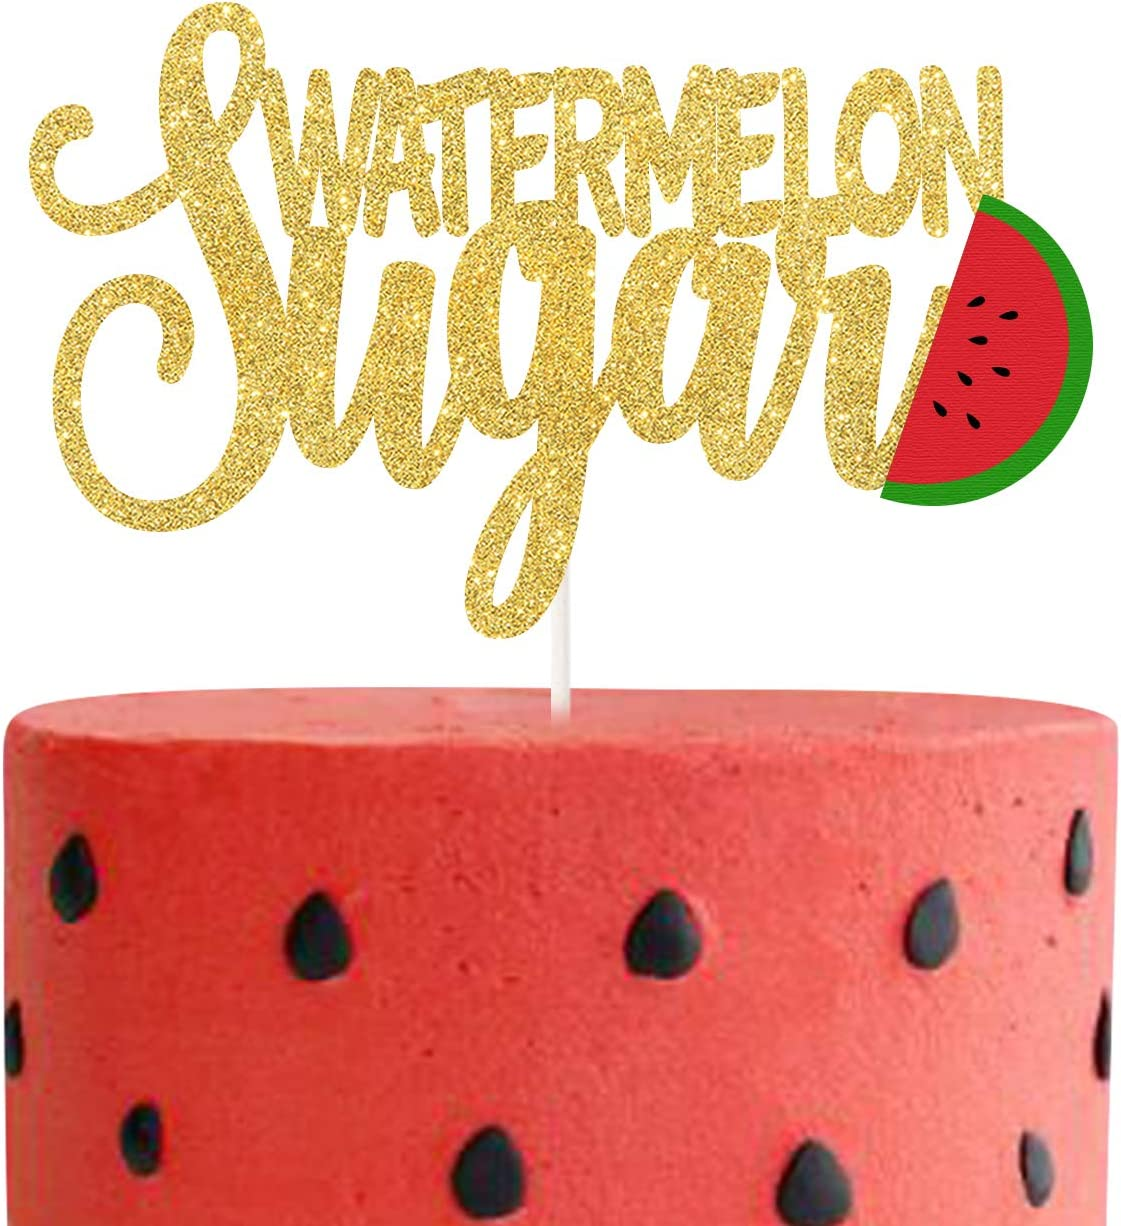 Watermelon Sugar cake topper Harry Styles cake decor , Harry Styles Cake Topper, Harry Styles Birthday Party.